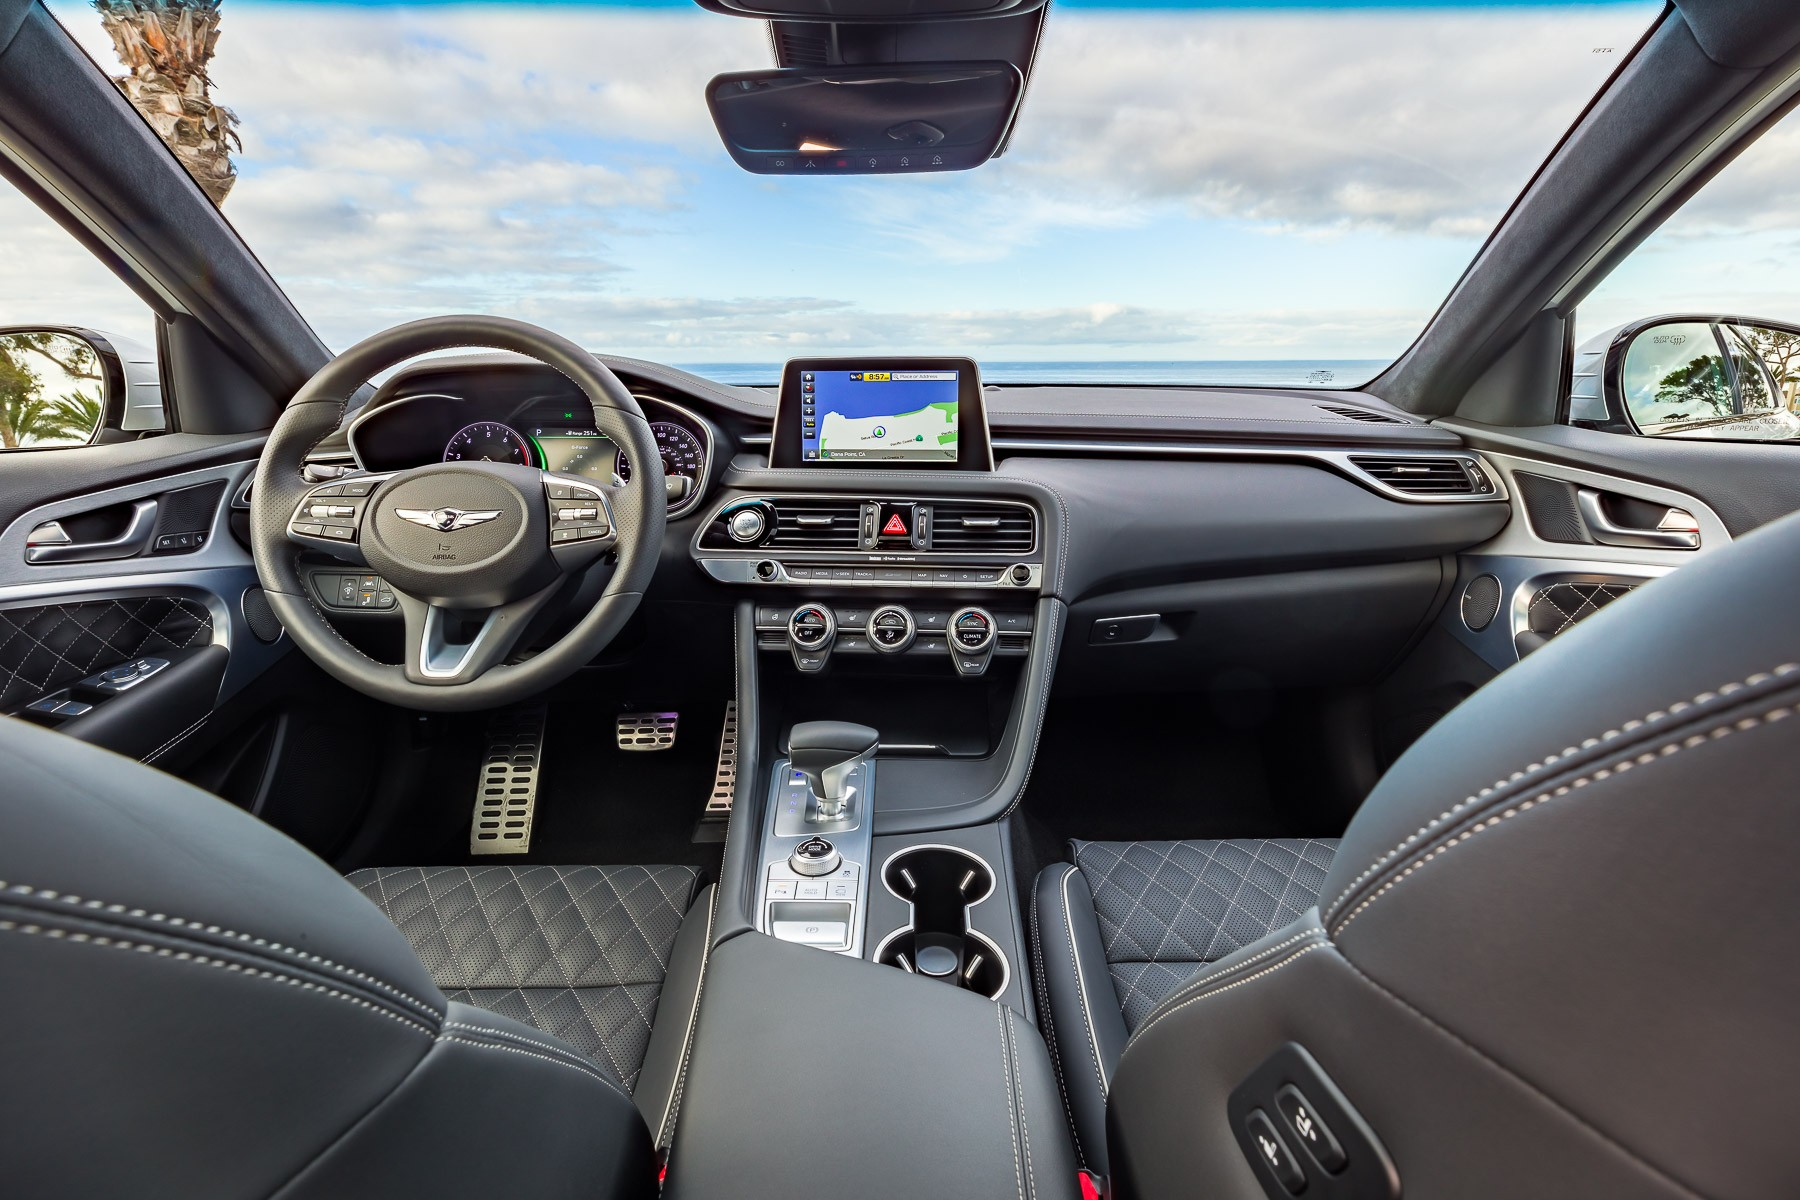 2019 genesis g70 available with manual transmission in the u s autoevolution. Black Bedroom Furniture Sets. Home Design Ideas